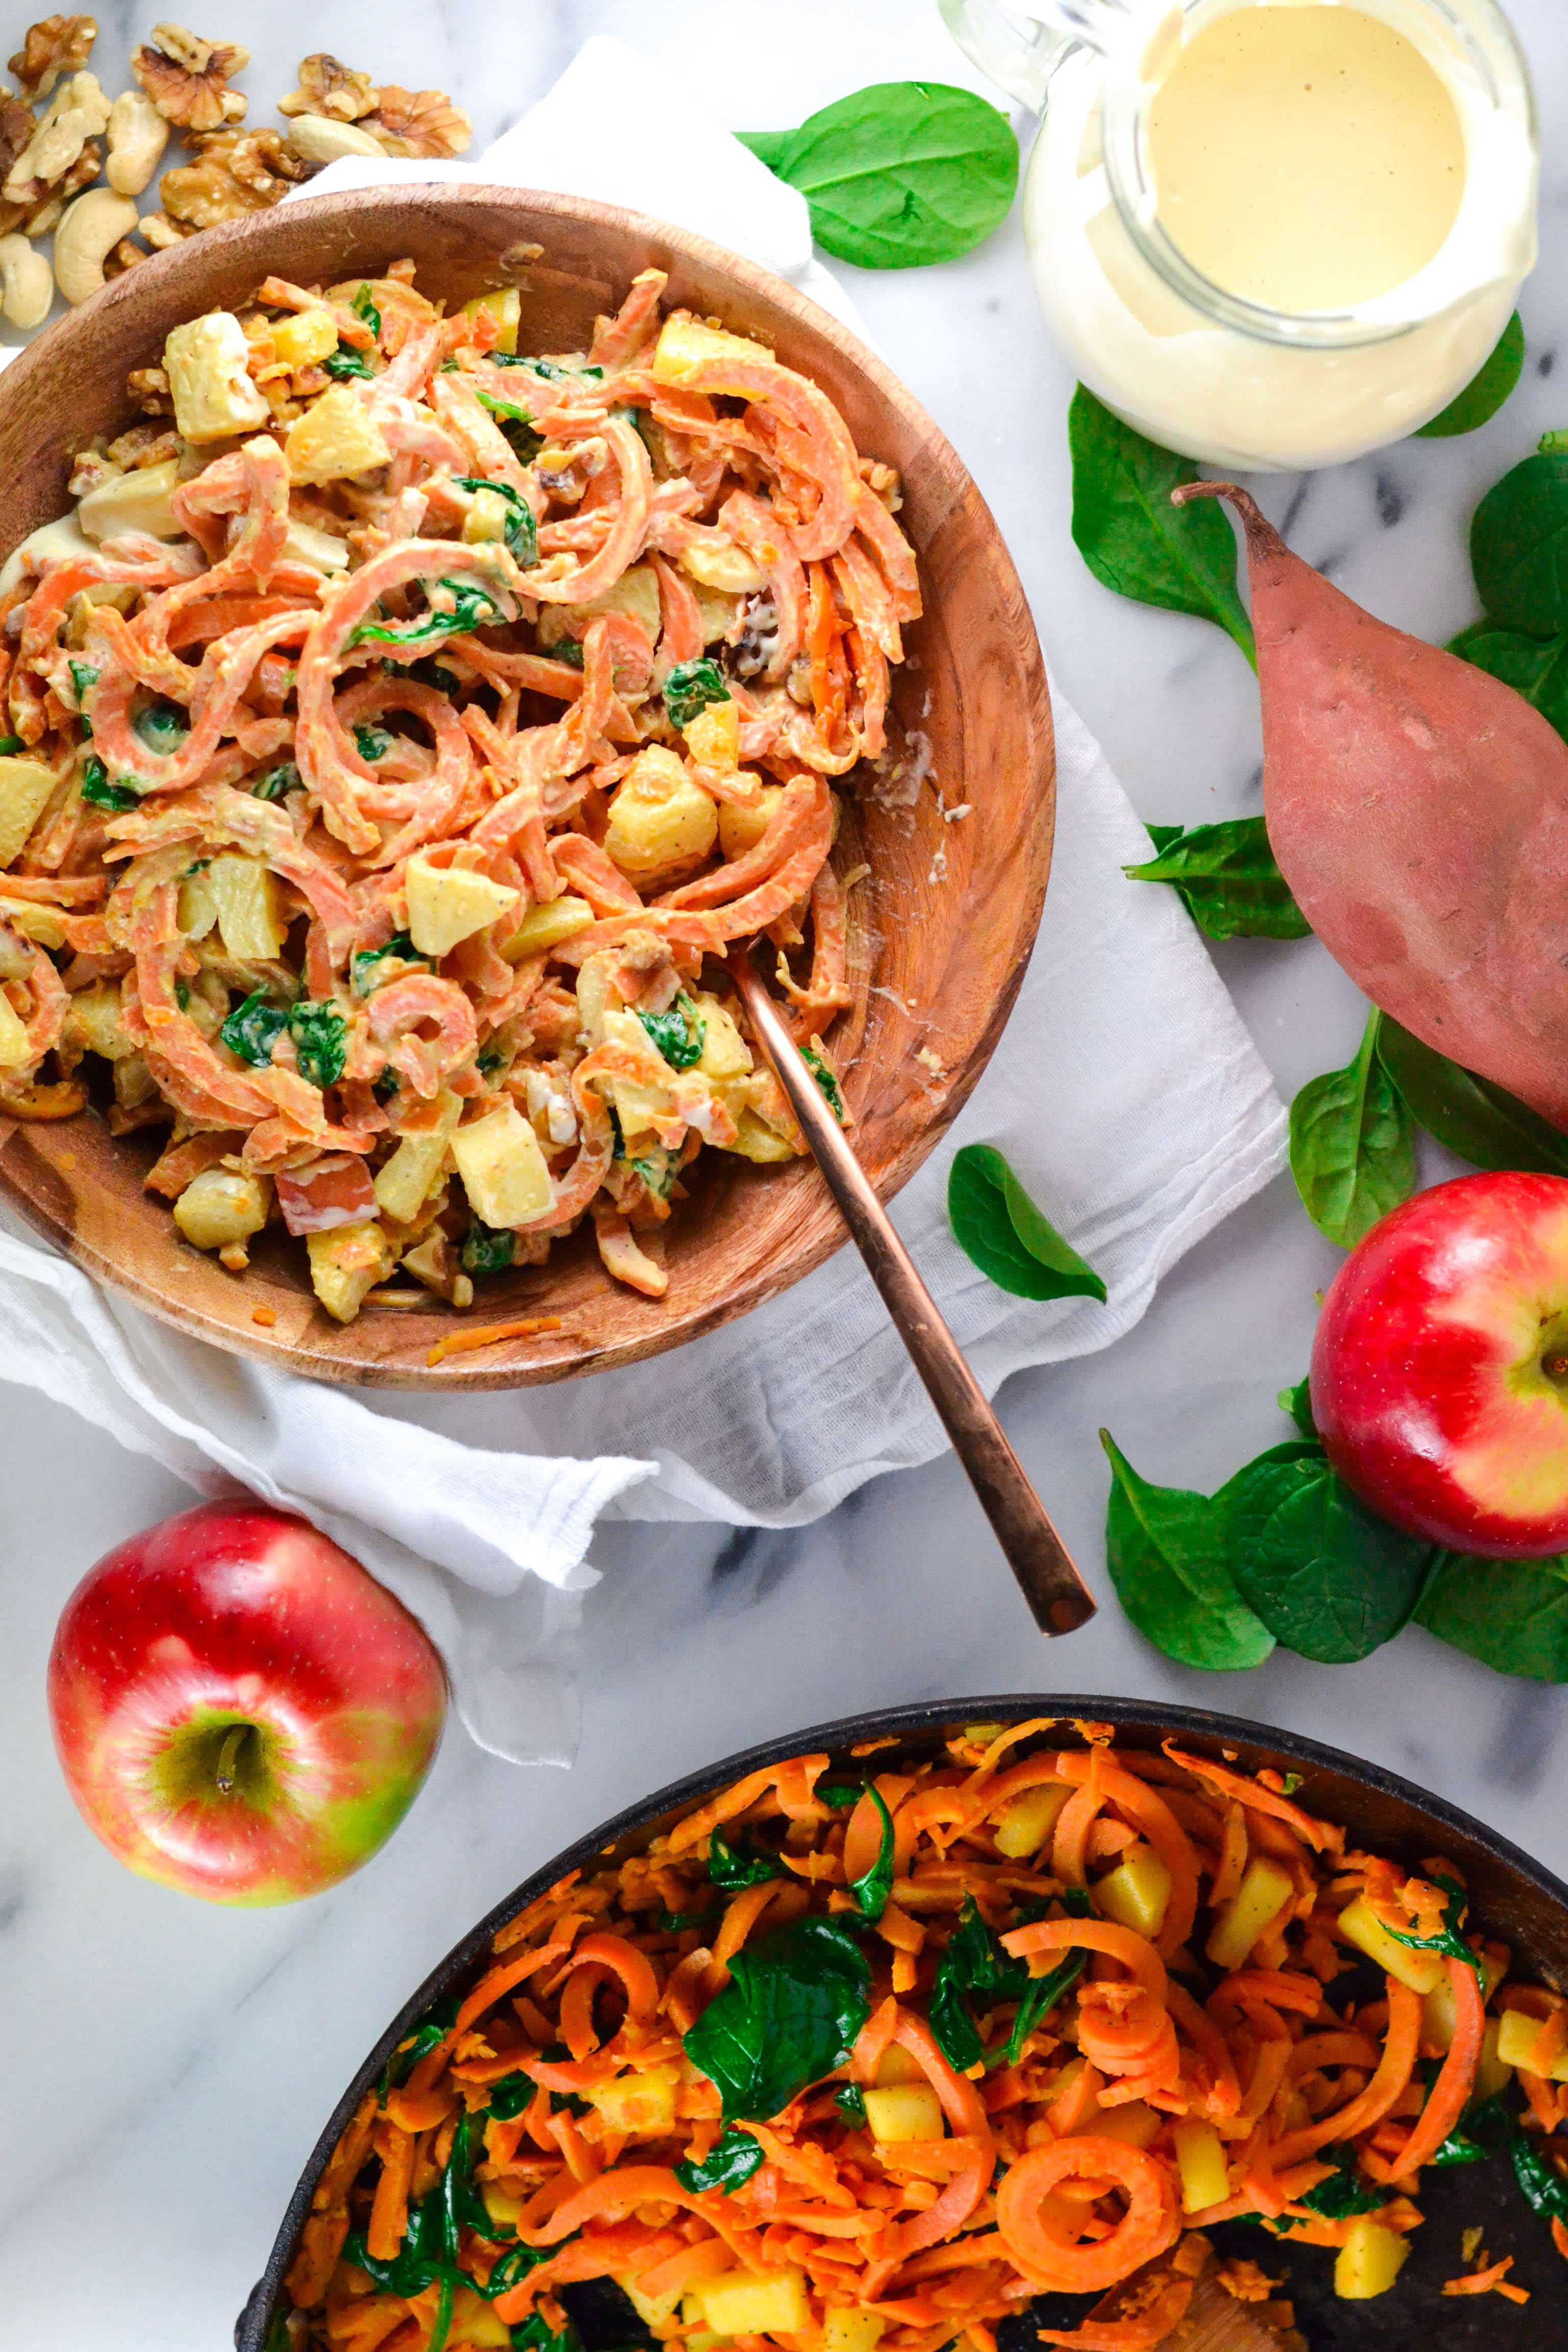 Sweet Potato Noodles in a Creamy Cashew Sauce (GF, DF, V) - A Dash of Megnut